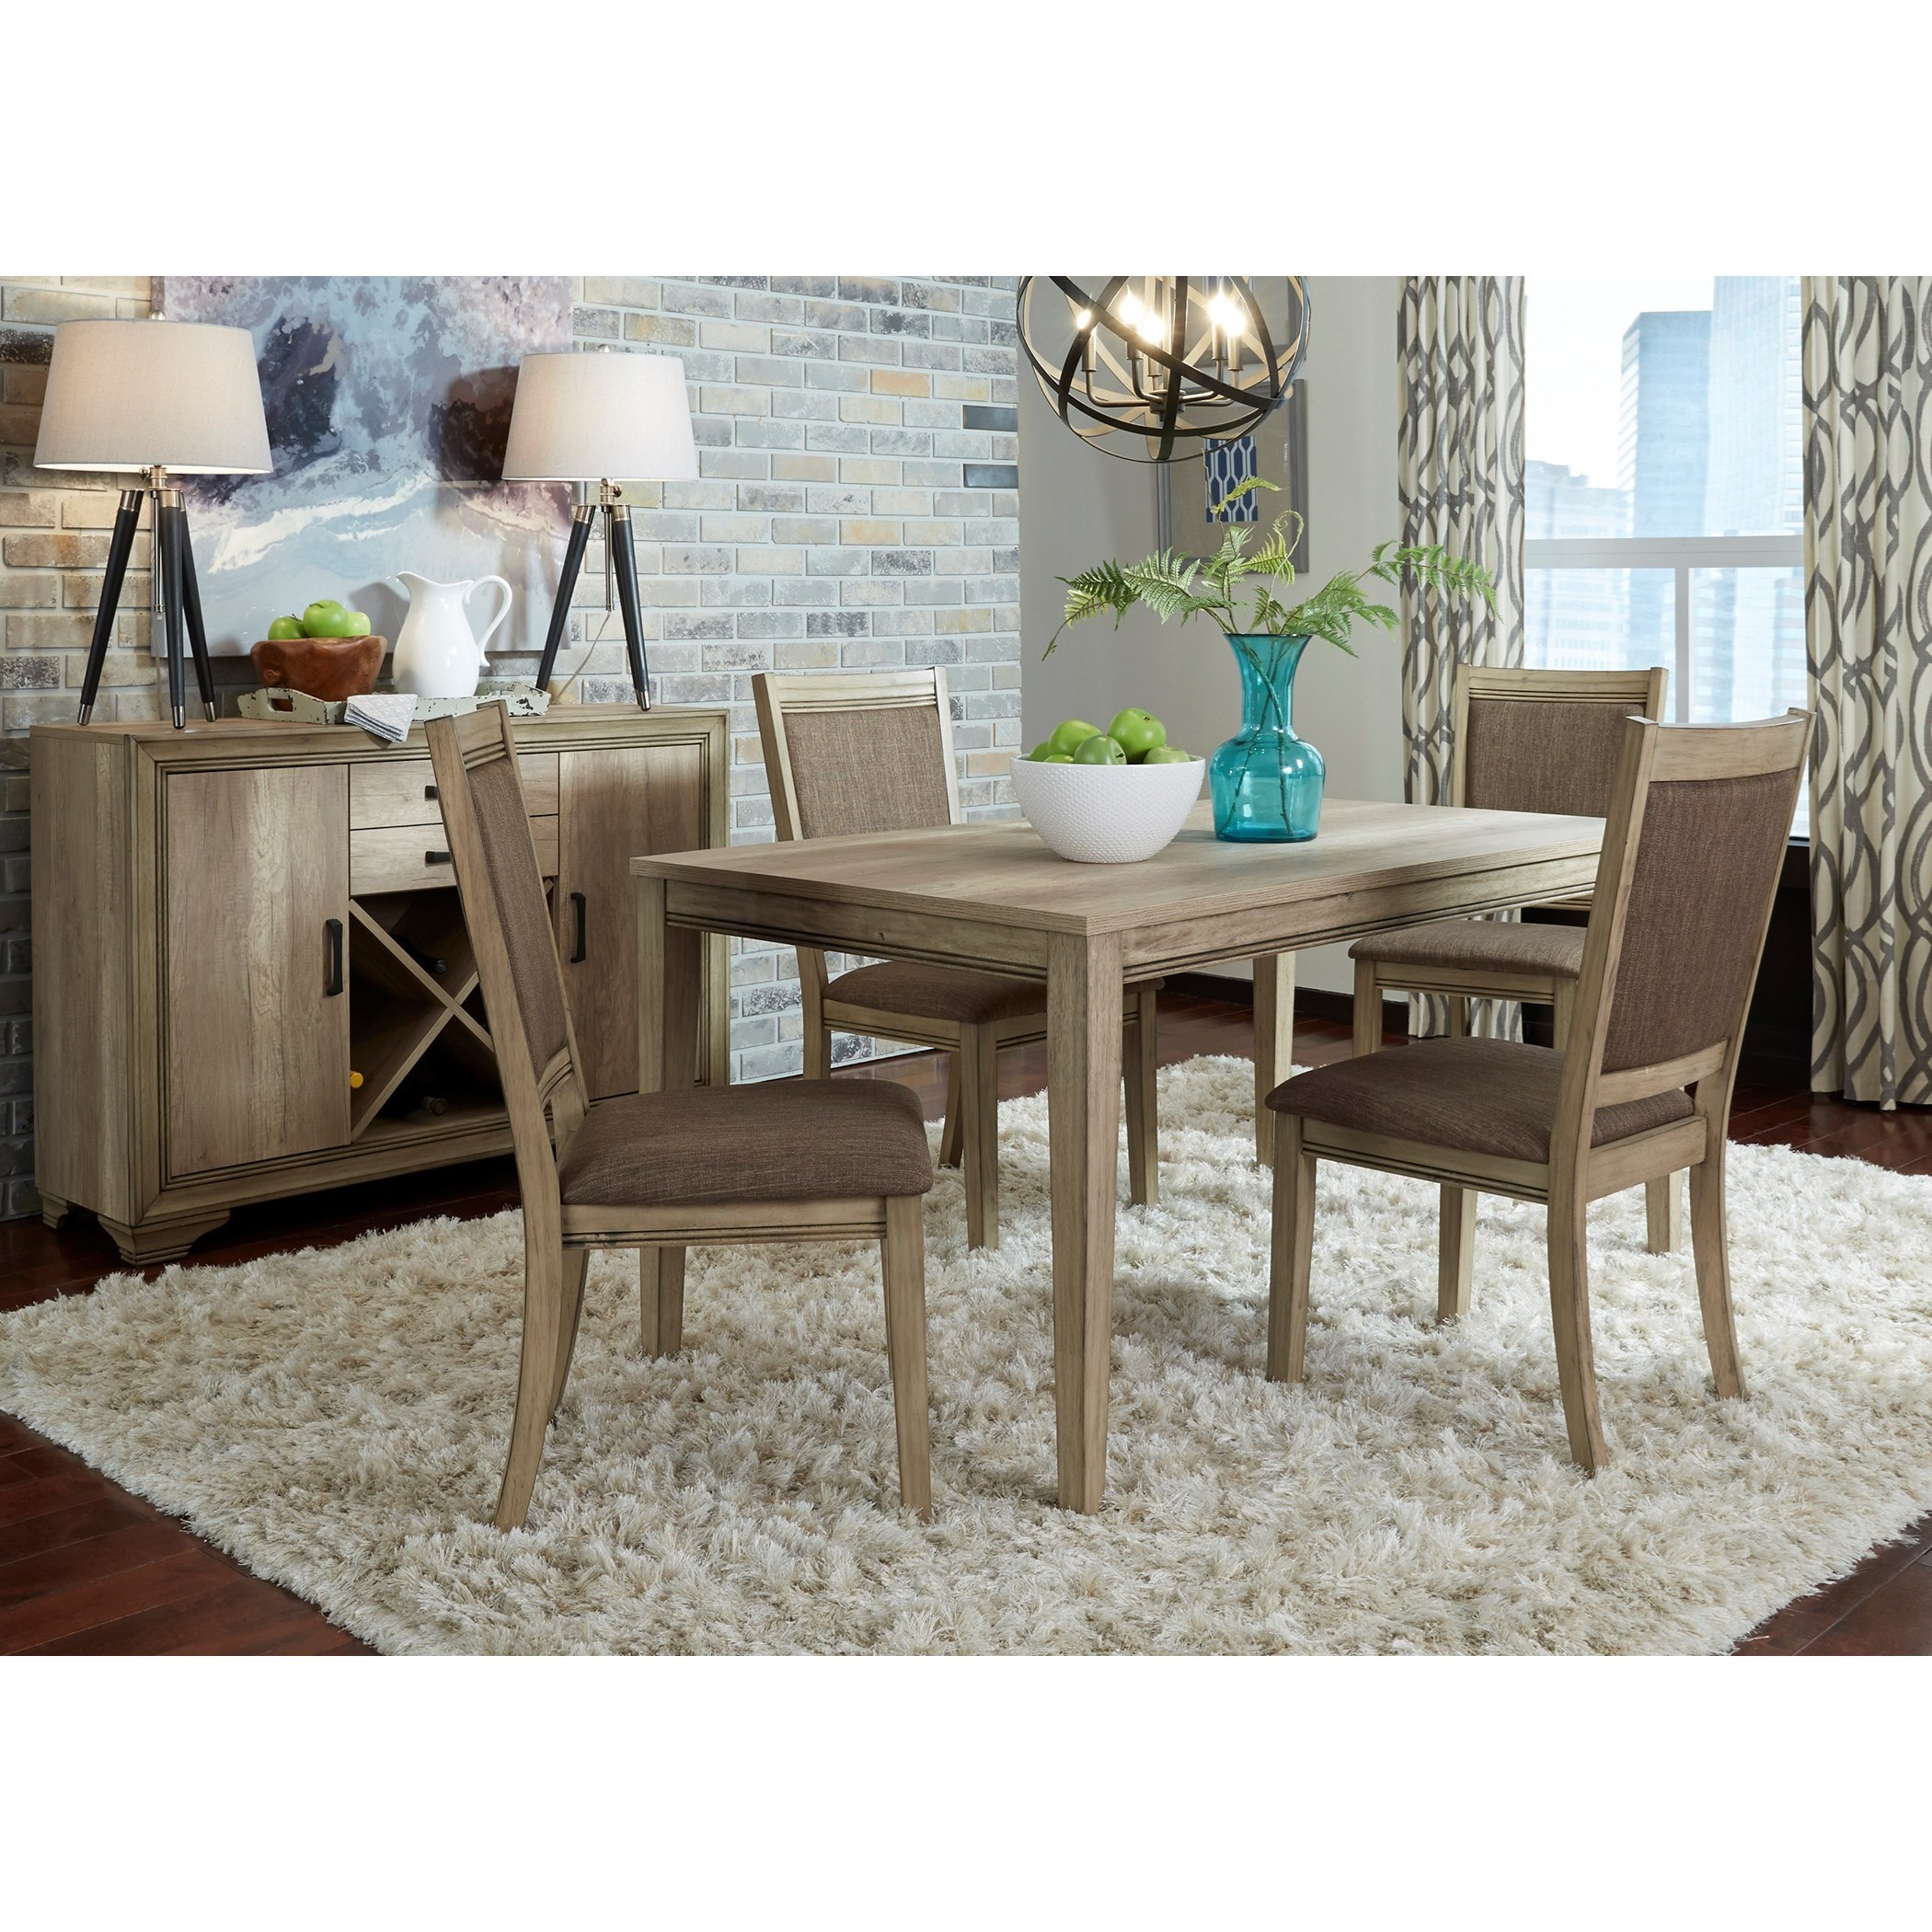 Sun Valley Opt 5 Piece Rectangular Table Set  by Libby at Walker's Furniture